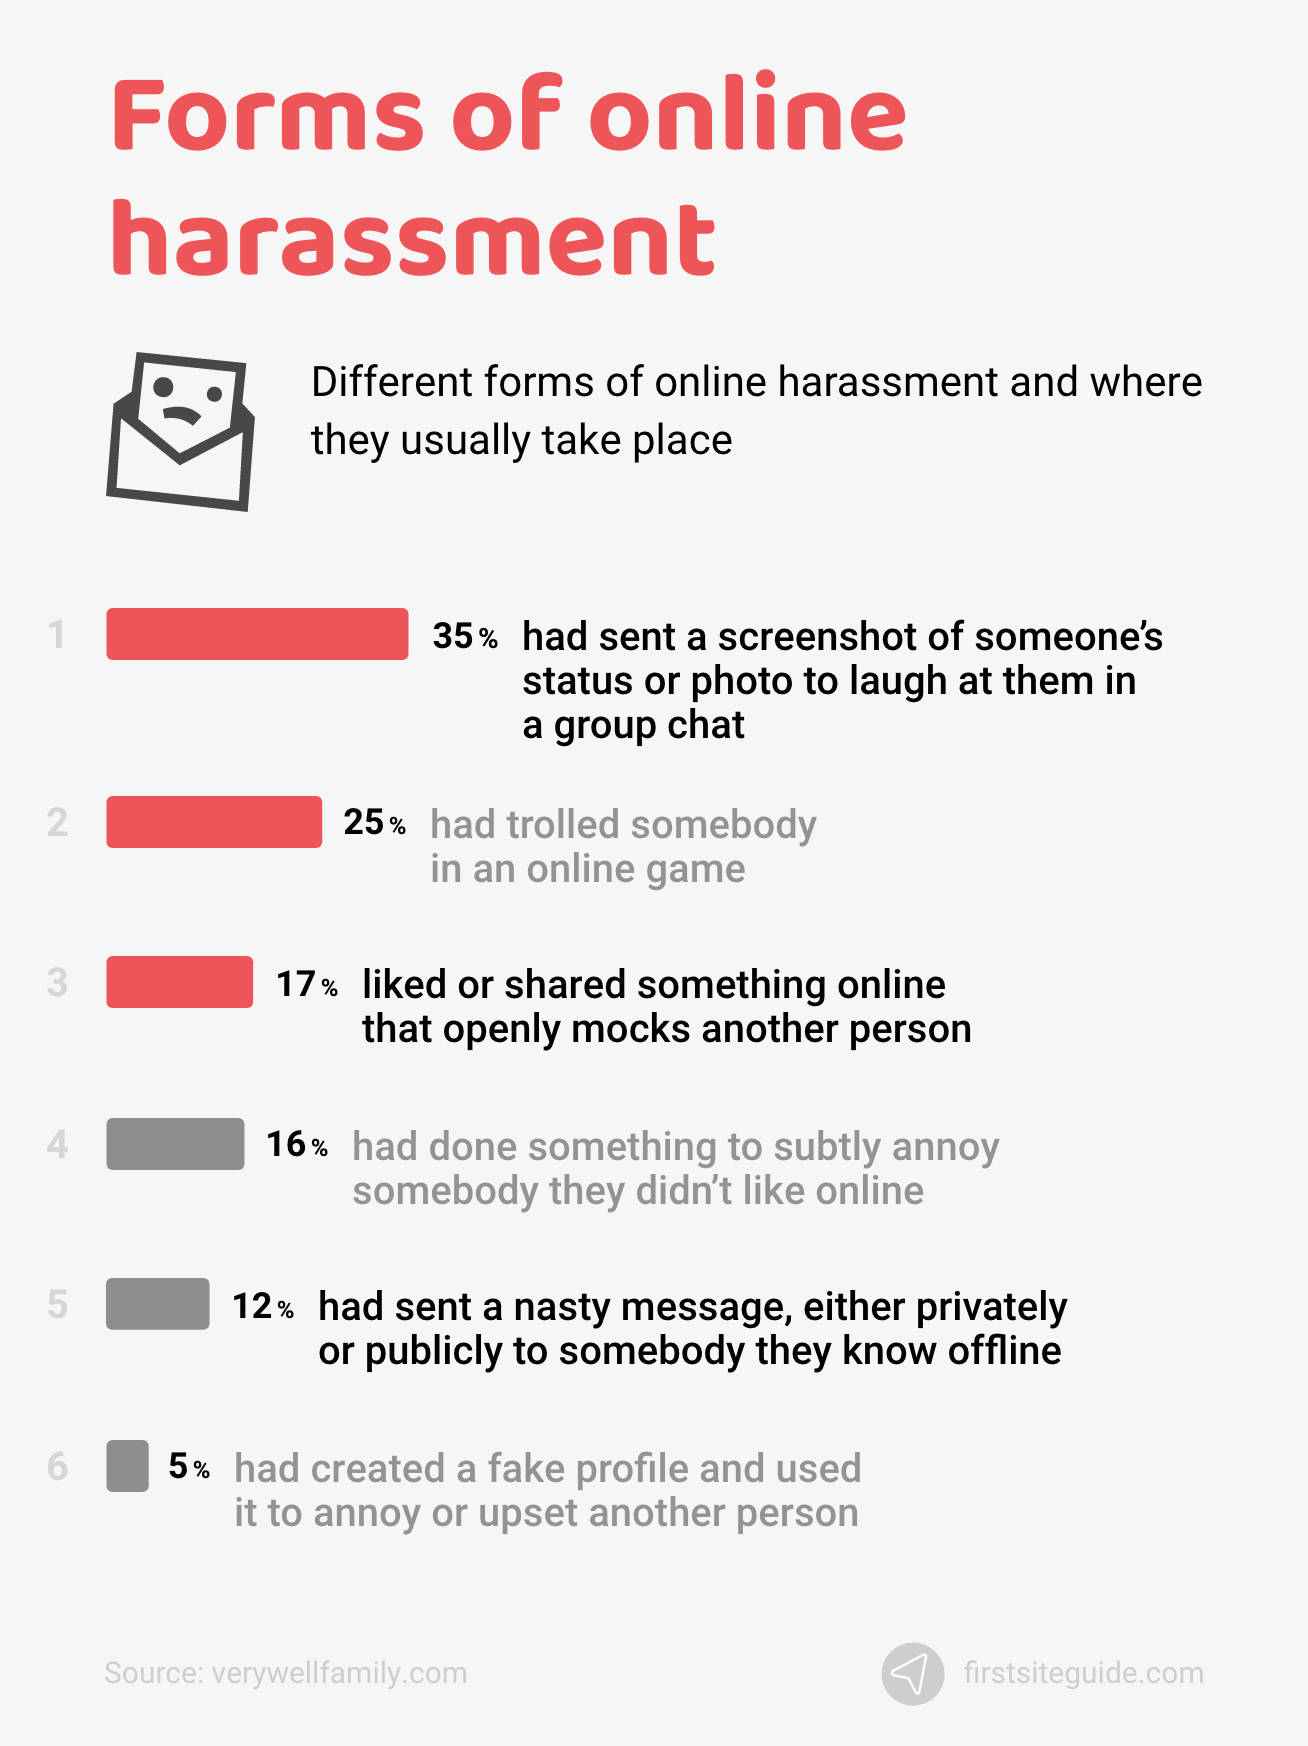 Forms of online harassment